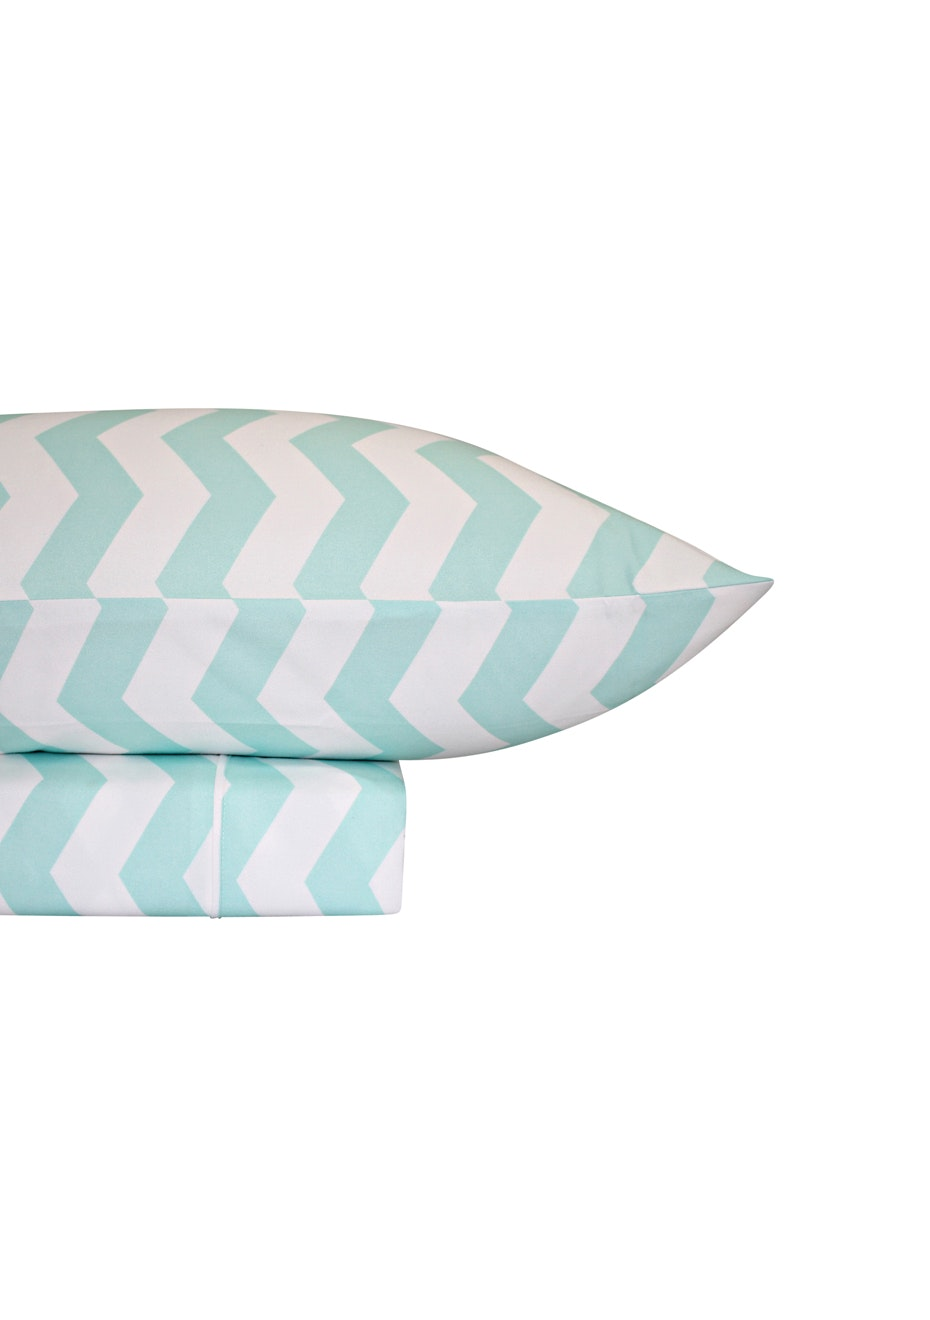 Thermal Flannel Sheet Sets - Chevron Design - Ice - King Bed